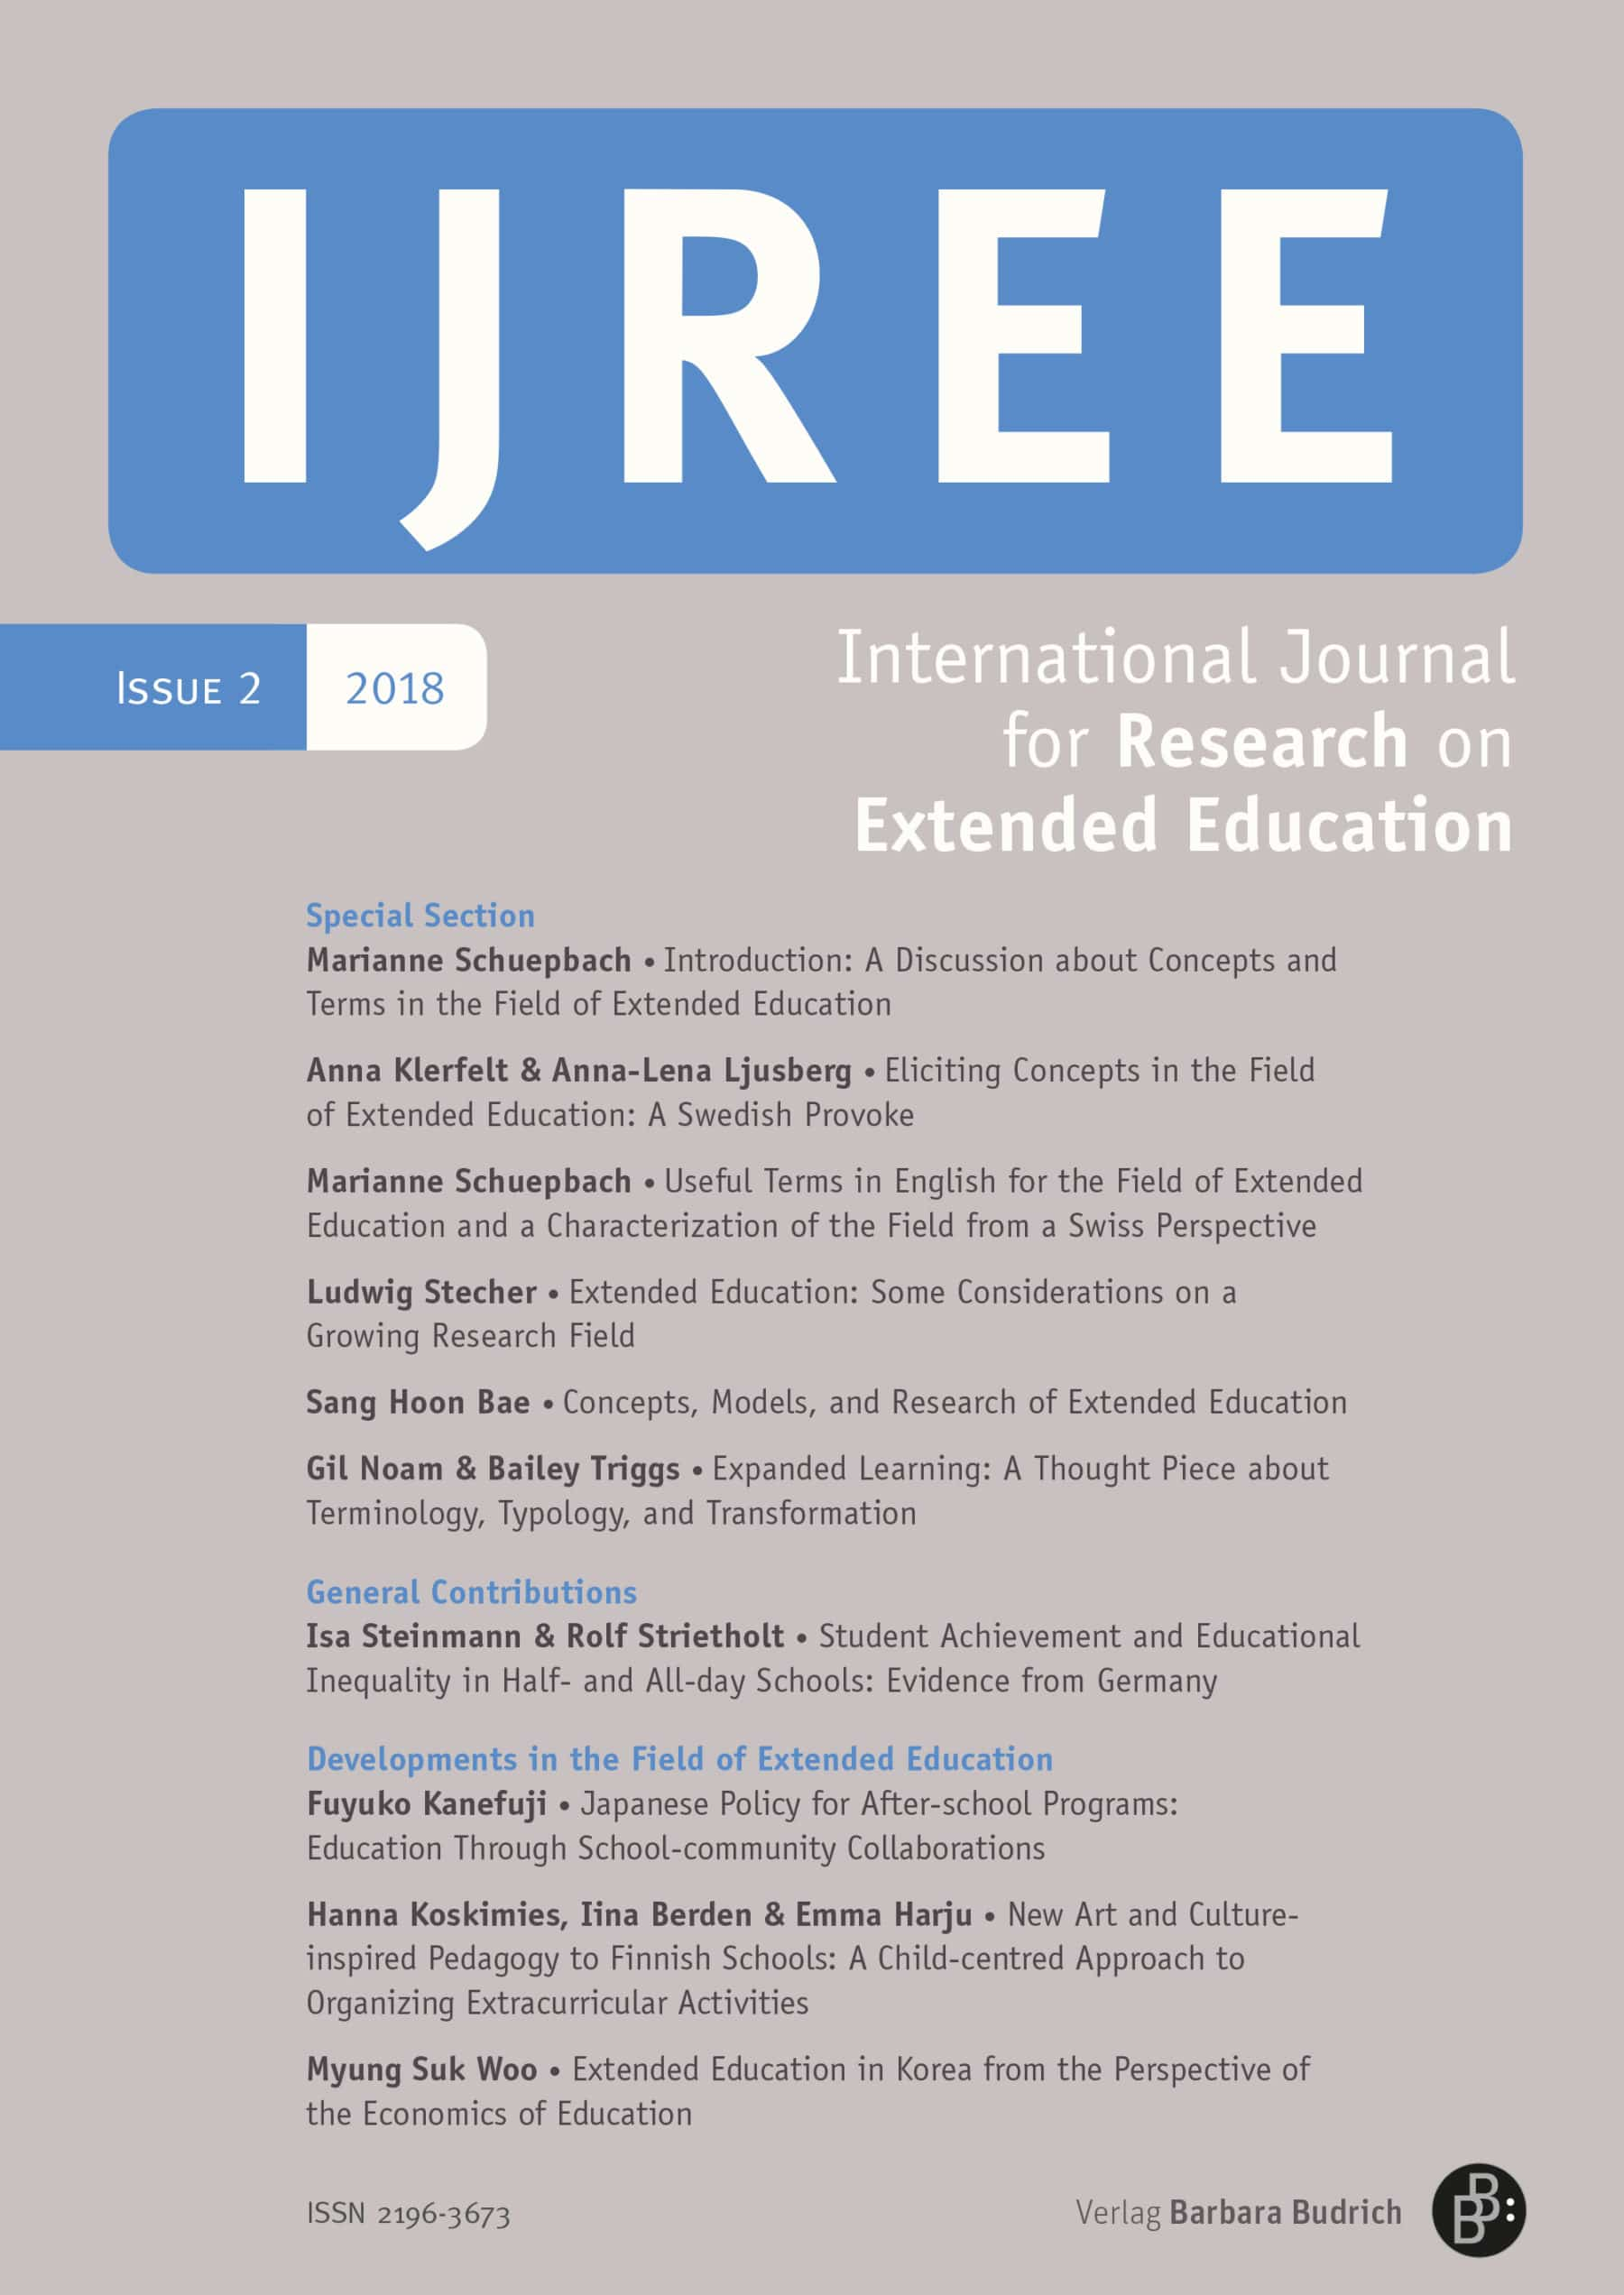 IJREE – International Journal for Research on Extended Education 2-2018: Free Contributions